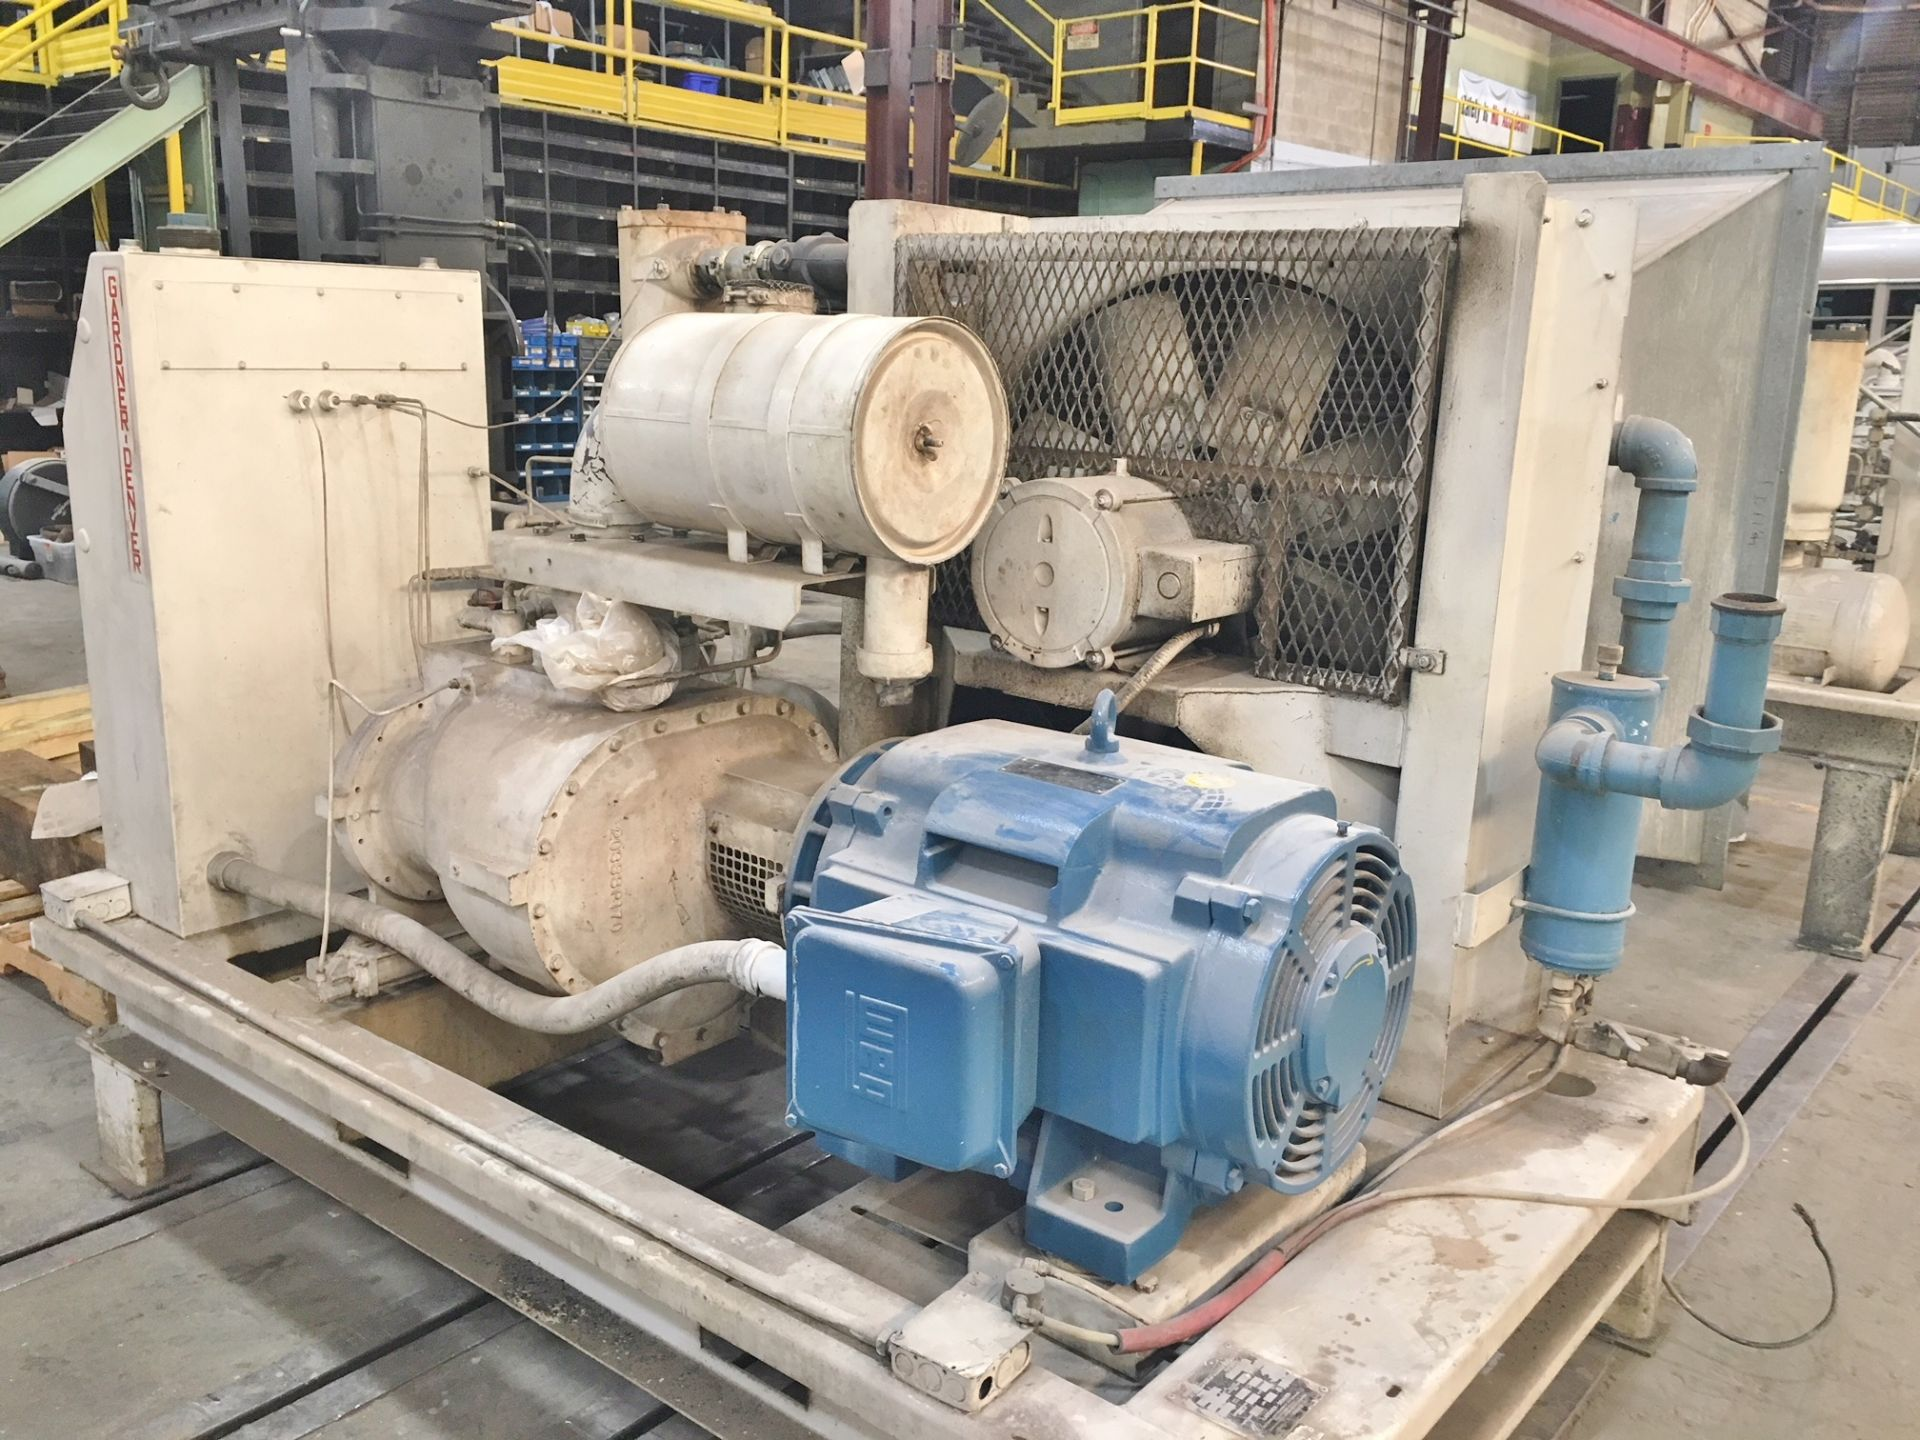 Lot 29 - Gardner Denver EAPQMC 100 HP Air Compressor